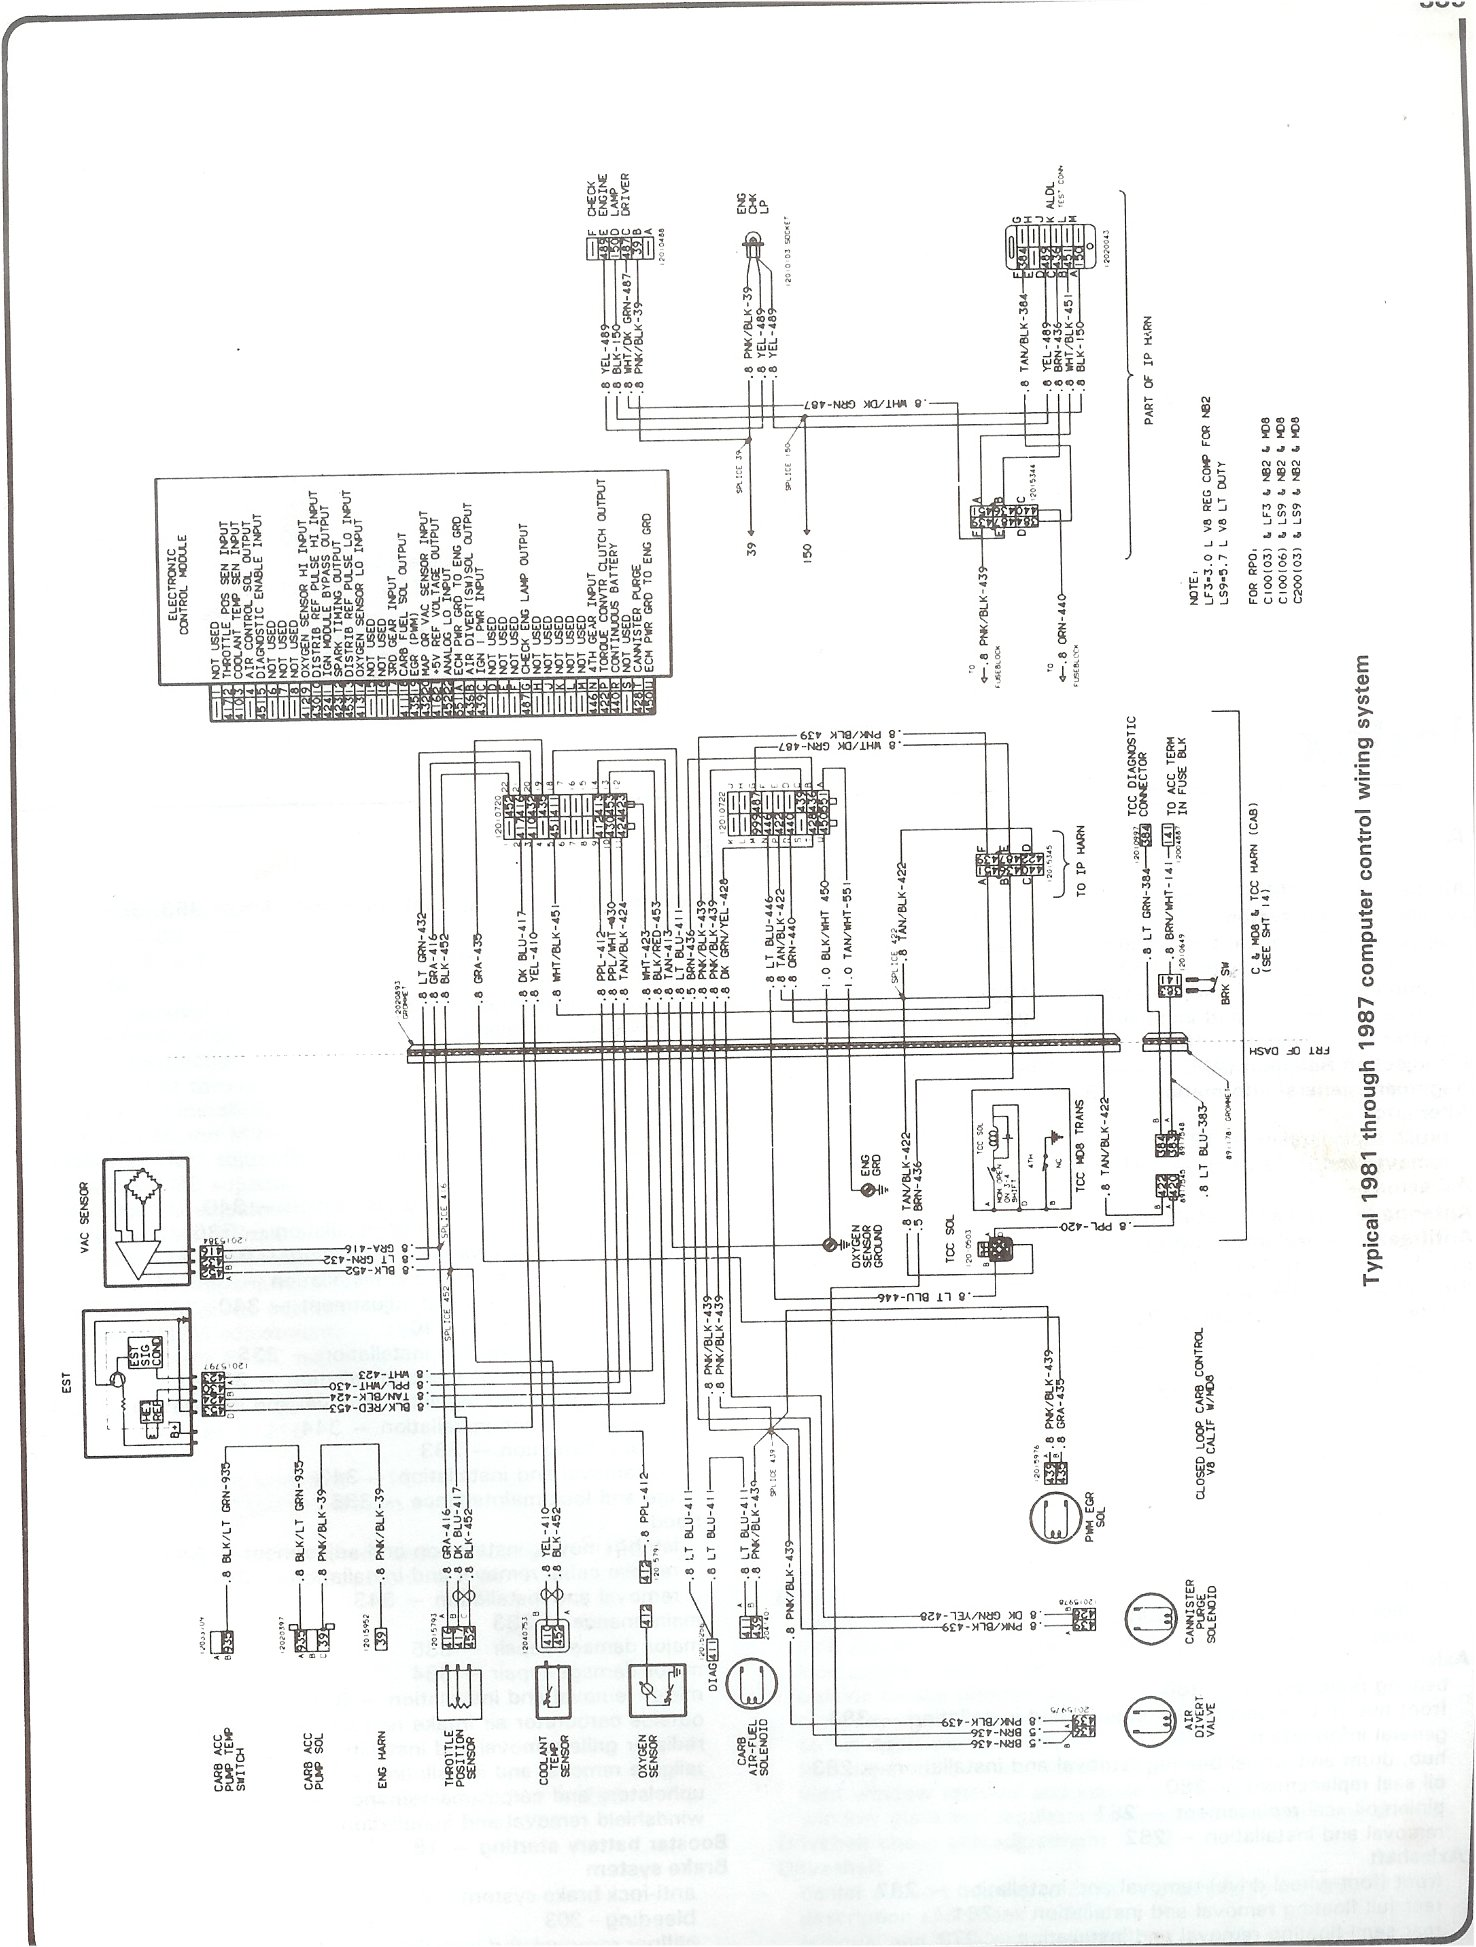 81 87_computer_control_wiring complete 73 87 wiring diagrams Wiring Harness Diagram at soozxer.org